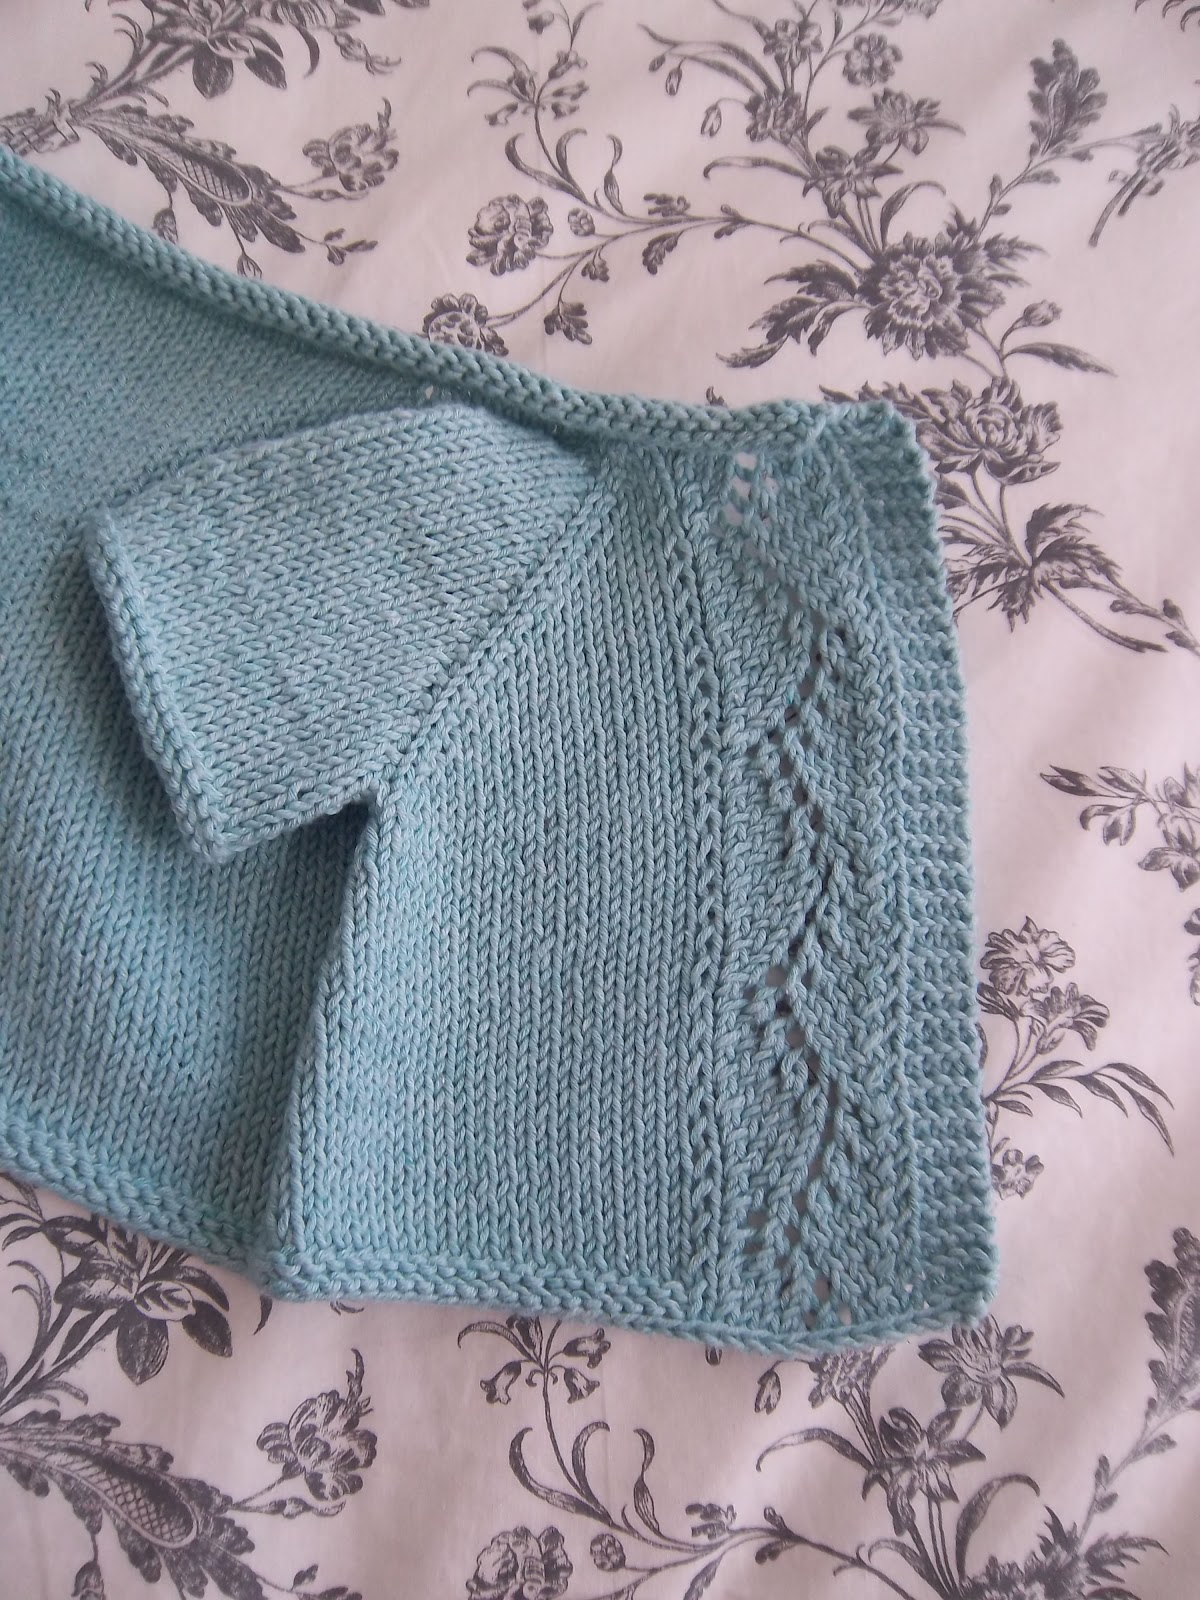 jadore knitting: Vine Lace Cardigan.